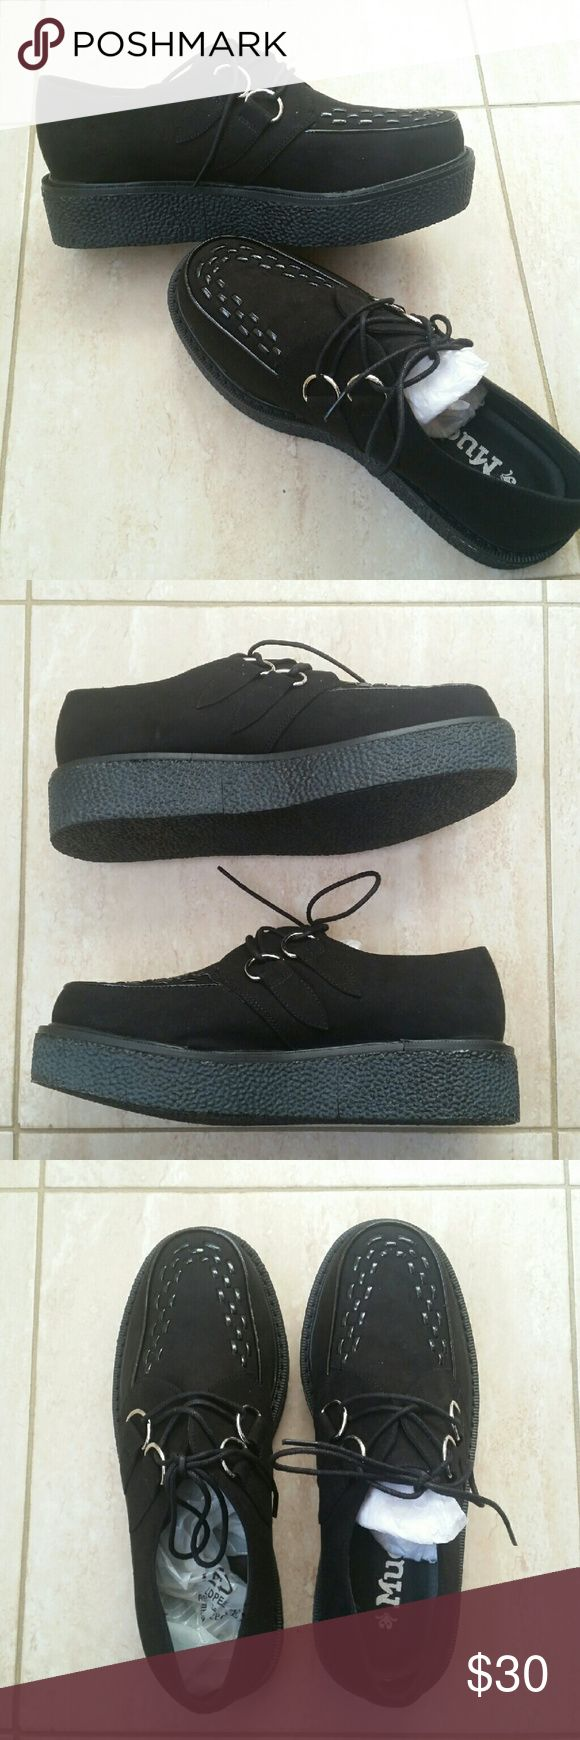 Black suede Creepers NWT Black suede creepers! | Size 7-7.5 Perfect for any grunge outfit with 1 inch platform Price negotiable!  Tags: #black #suede #grunge #creepers #creeper #chunky #boots #booties #UNIF #TUK #shoes #boots #platform #inch #goth #negotiable Shoes Platforms